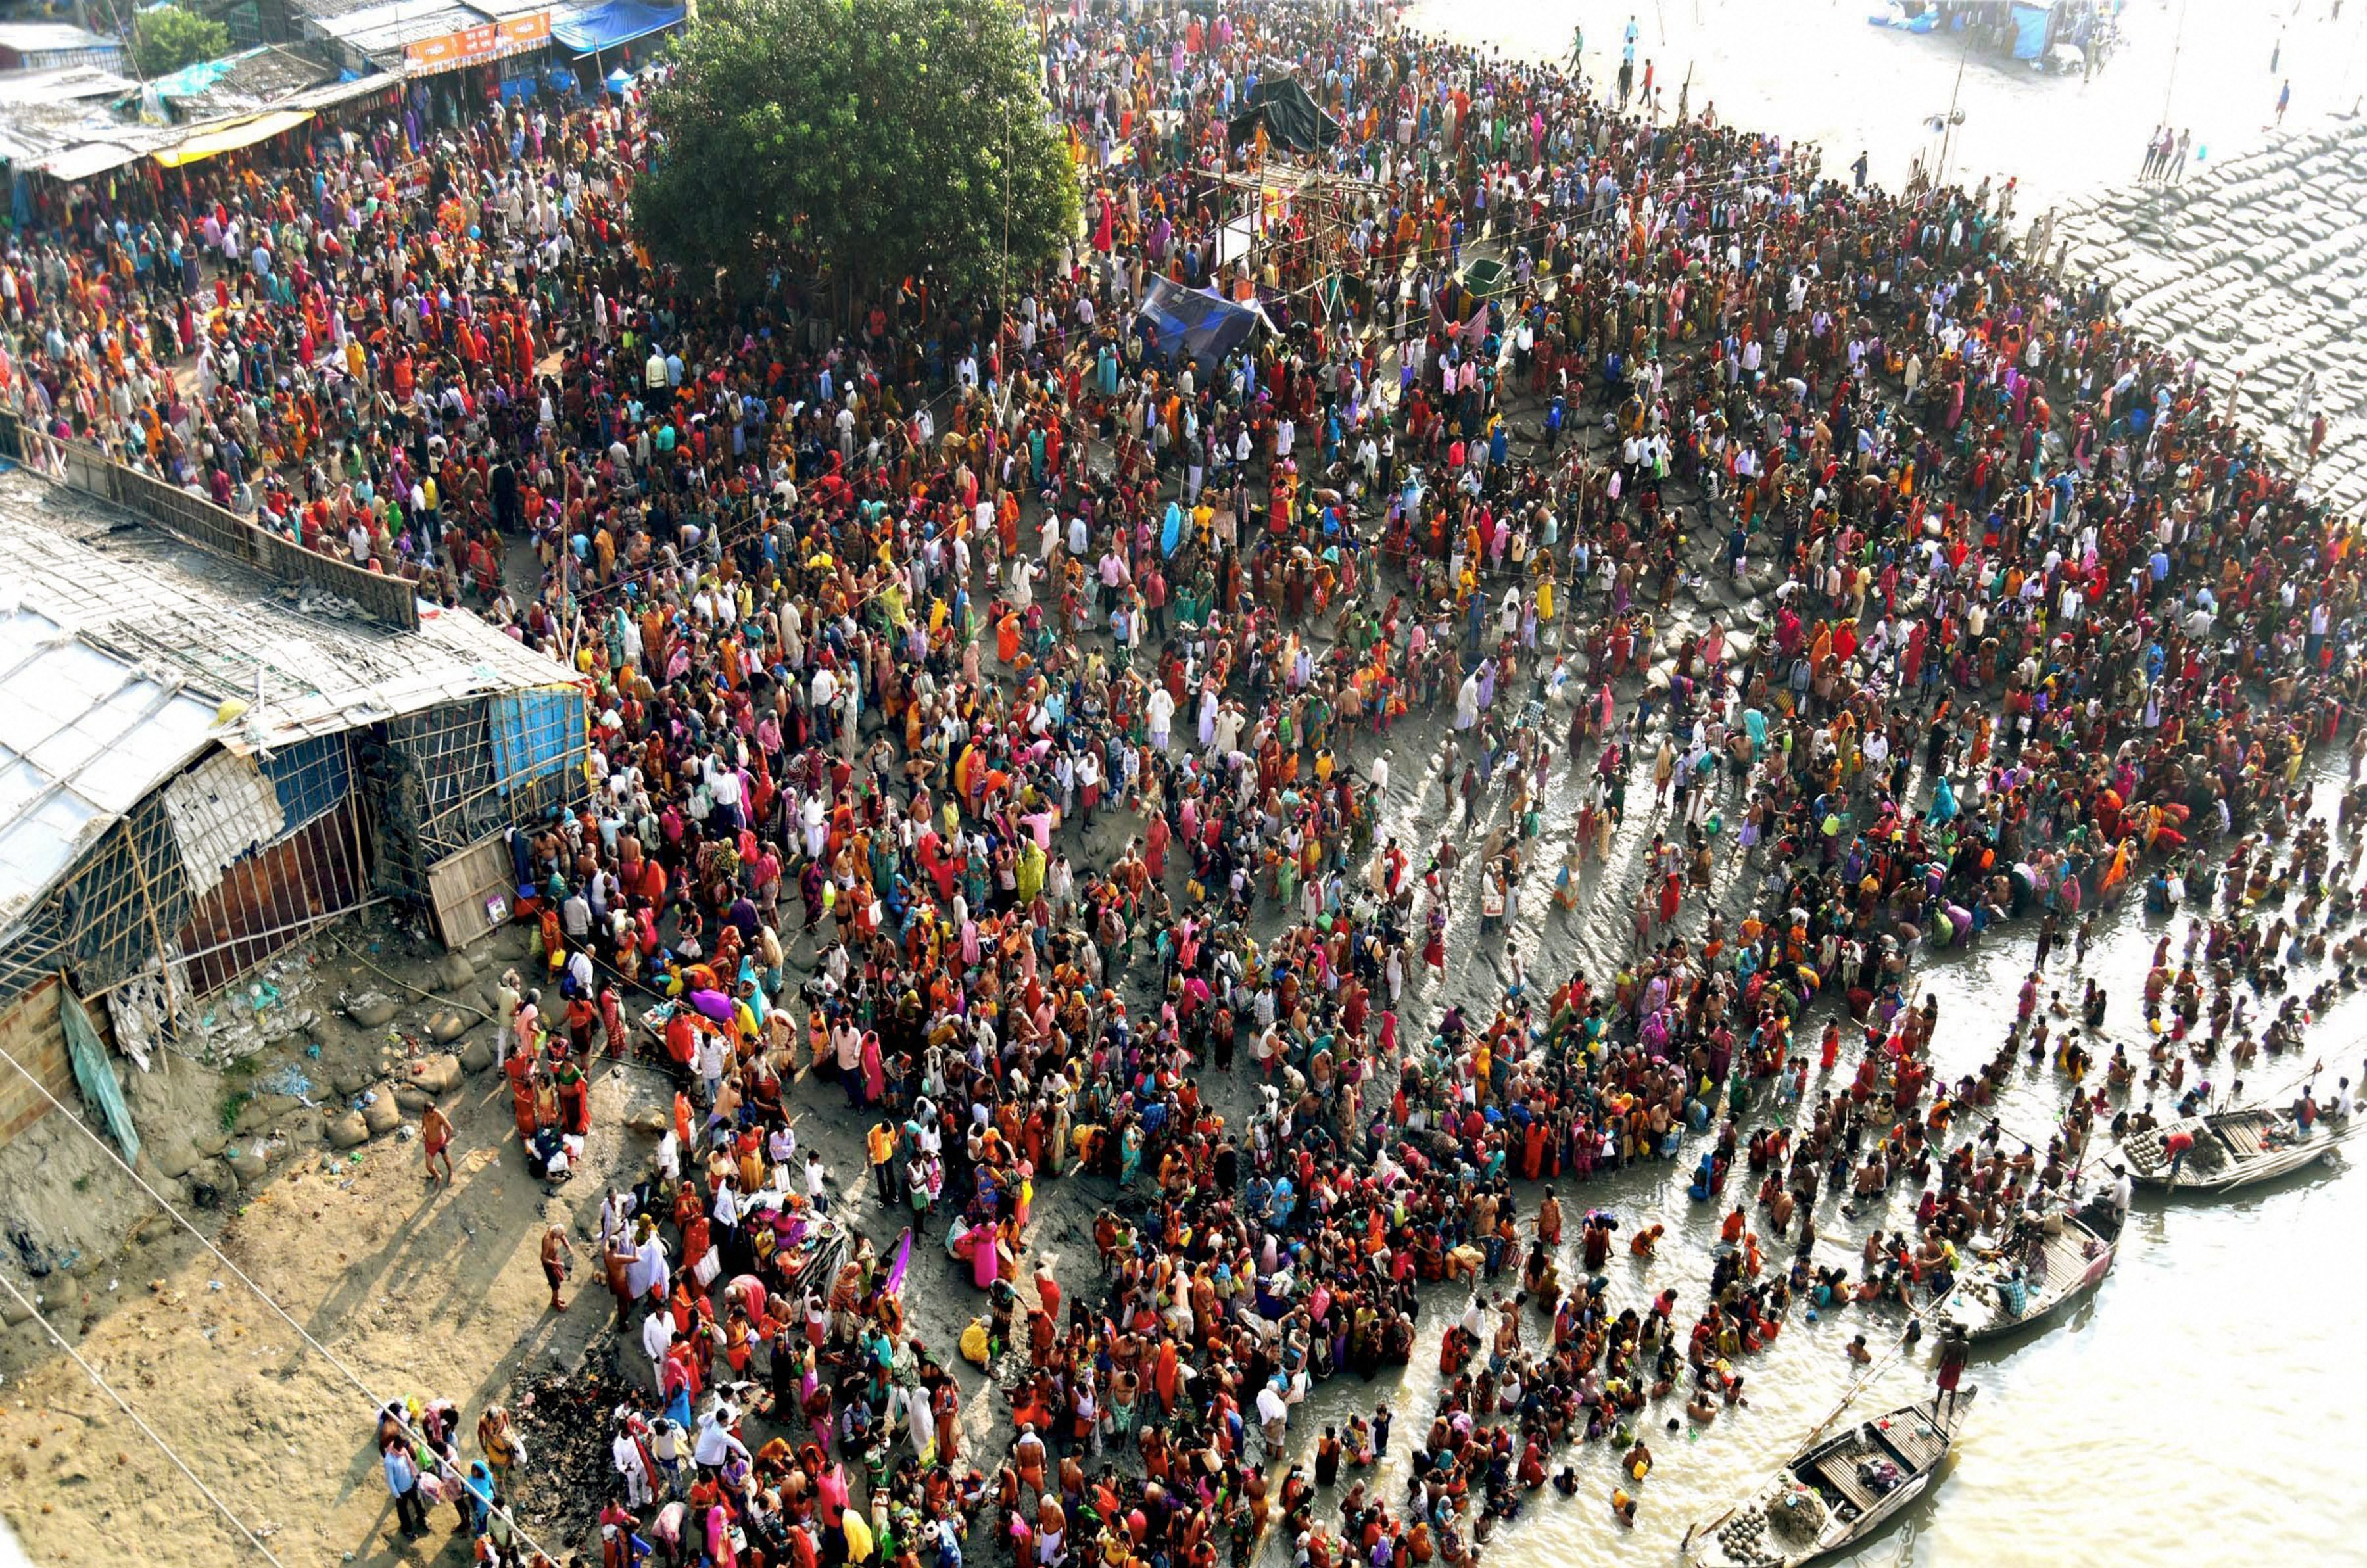 Devotees throng Bihar's Simariya Ghat in Begusarai to take a holy dip in the Ganga. Three people died in a stampede at the ghat earlier in the day. (Credit: PTI)